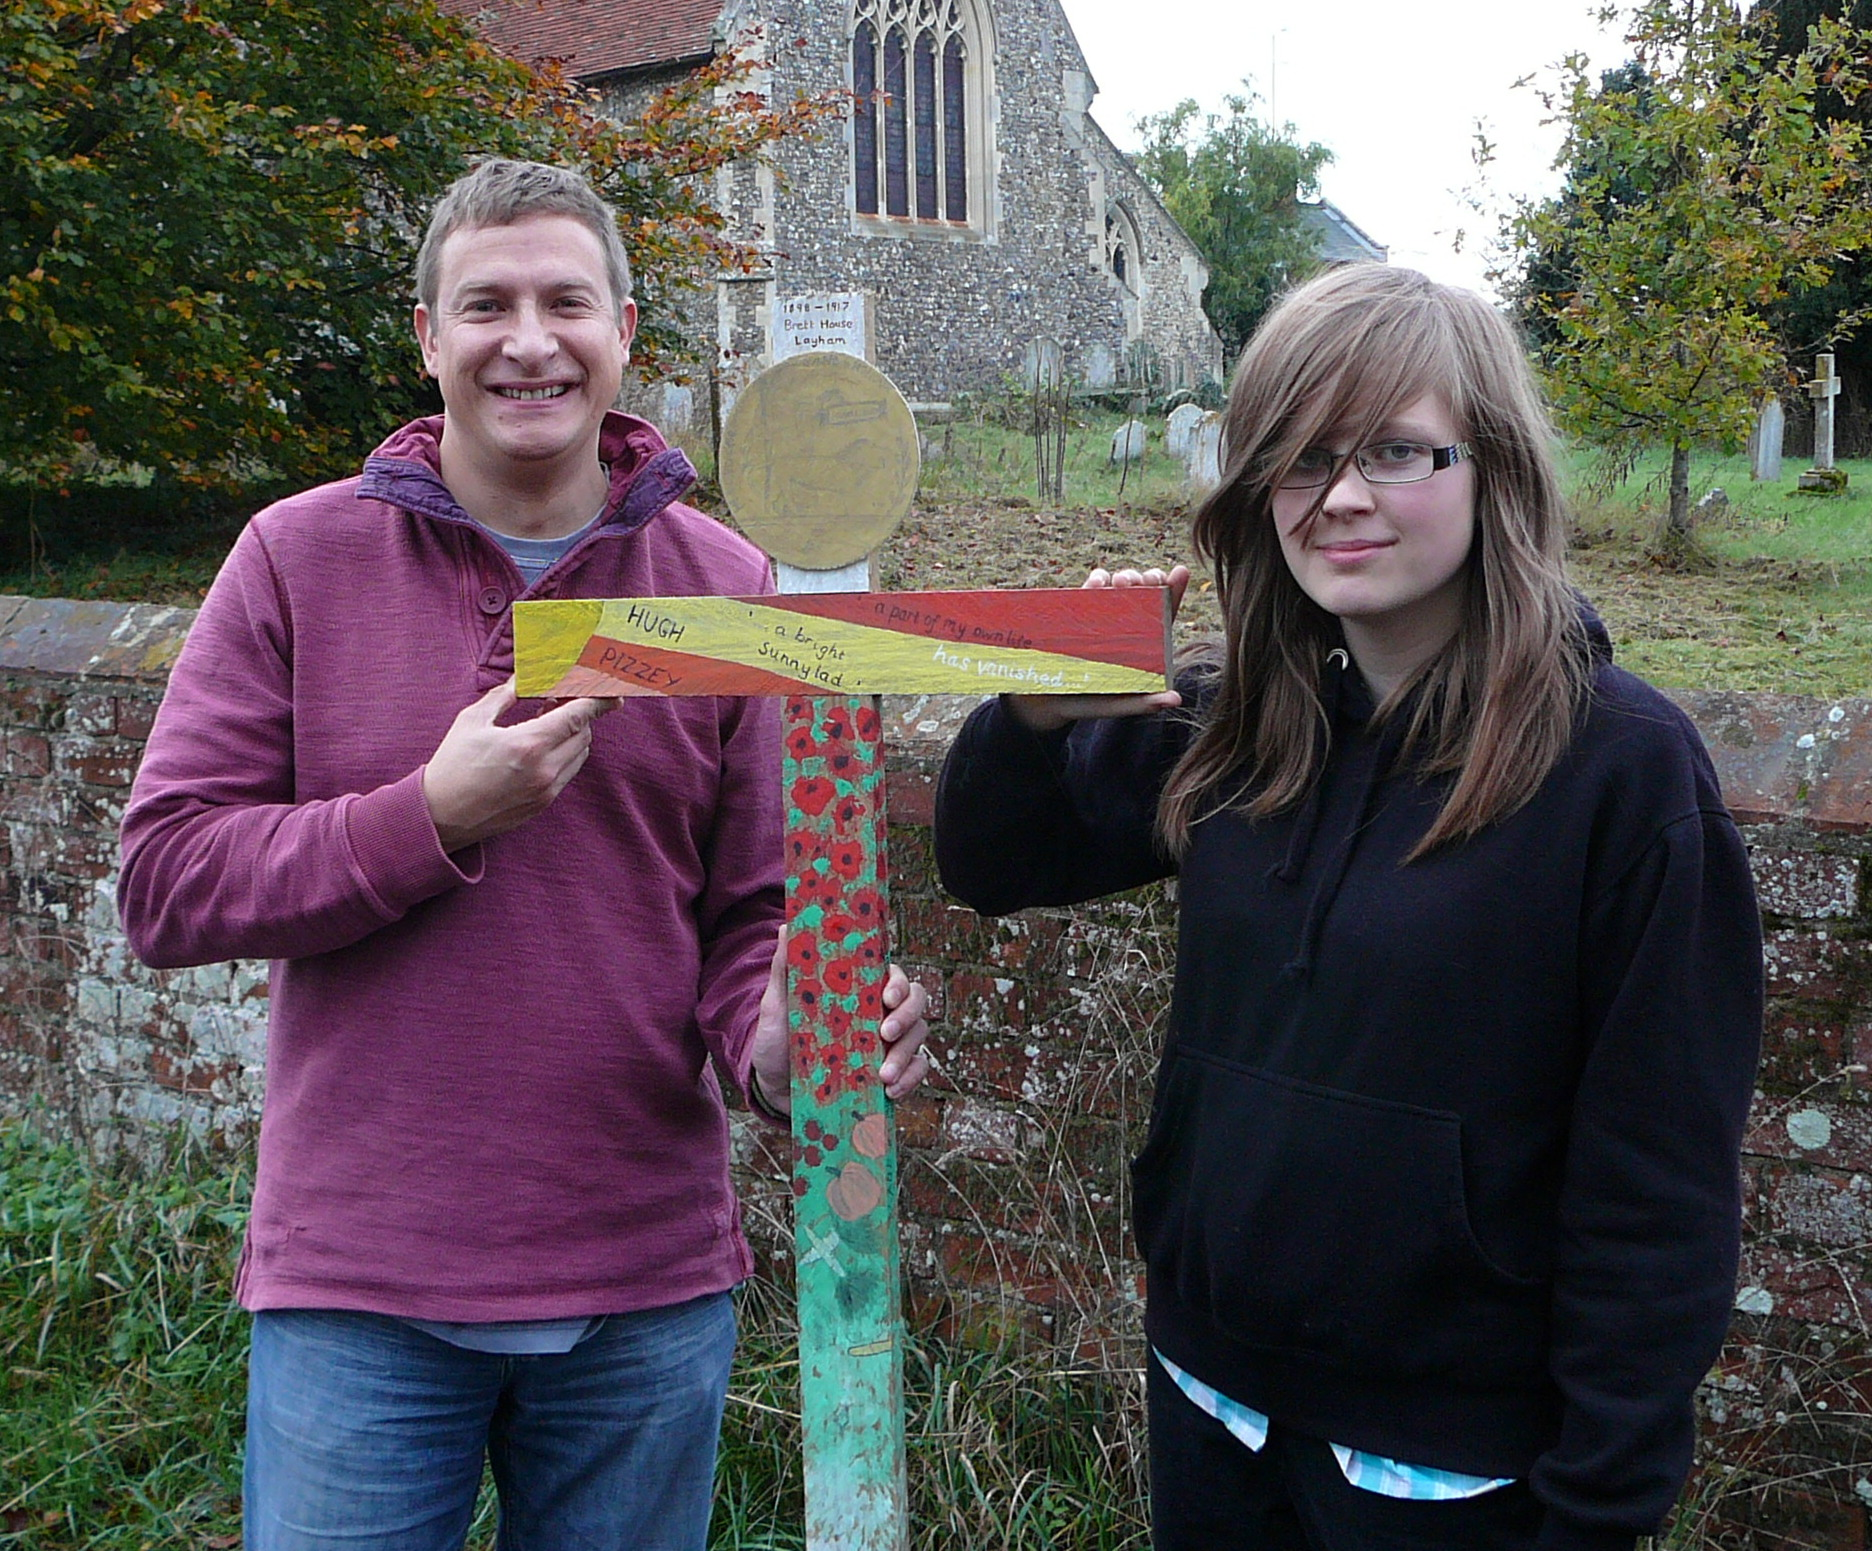 121 ANDREW FROLISH AND MOLLY KEEBLE WITH THE CROSS IN MEMORY OF HUGH PIZZEY.jpg